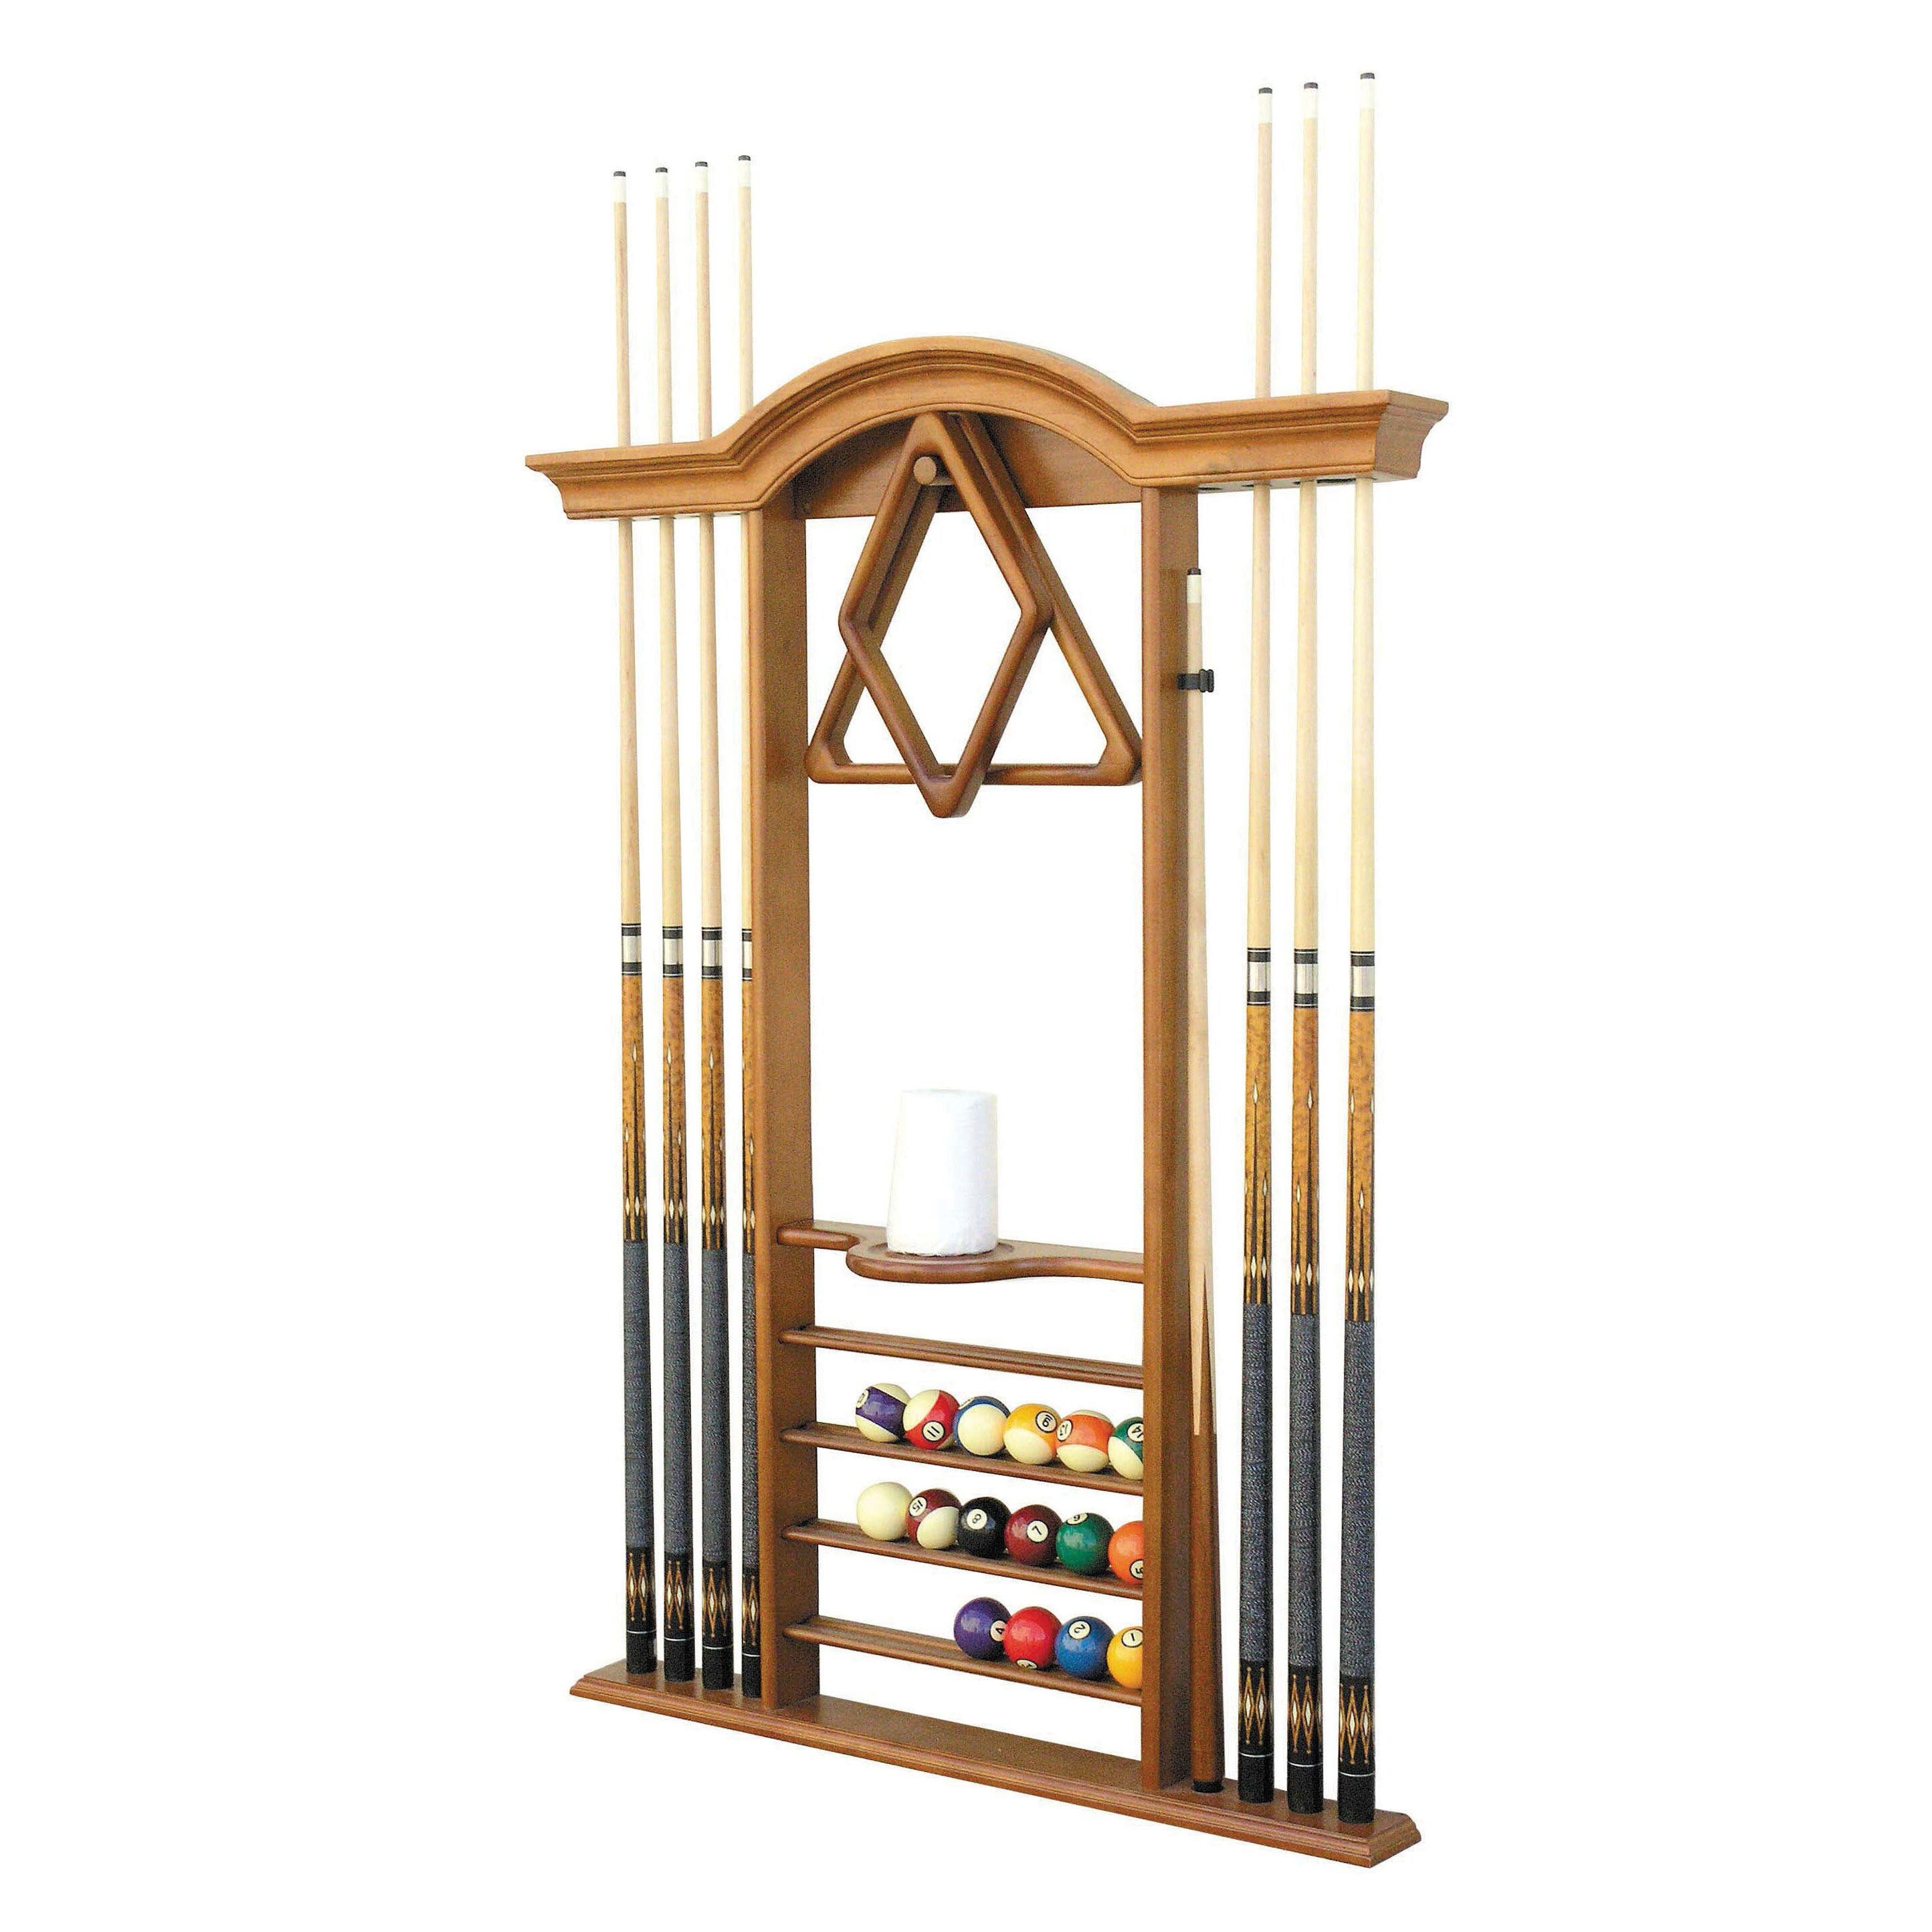 The Level Best Deluxe Wall Pool Cue Rack Amp Reviews Wayfair